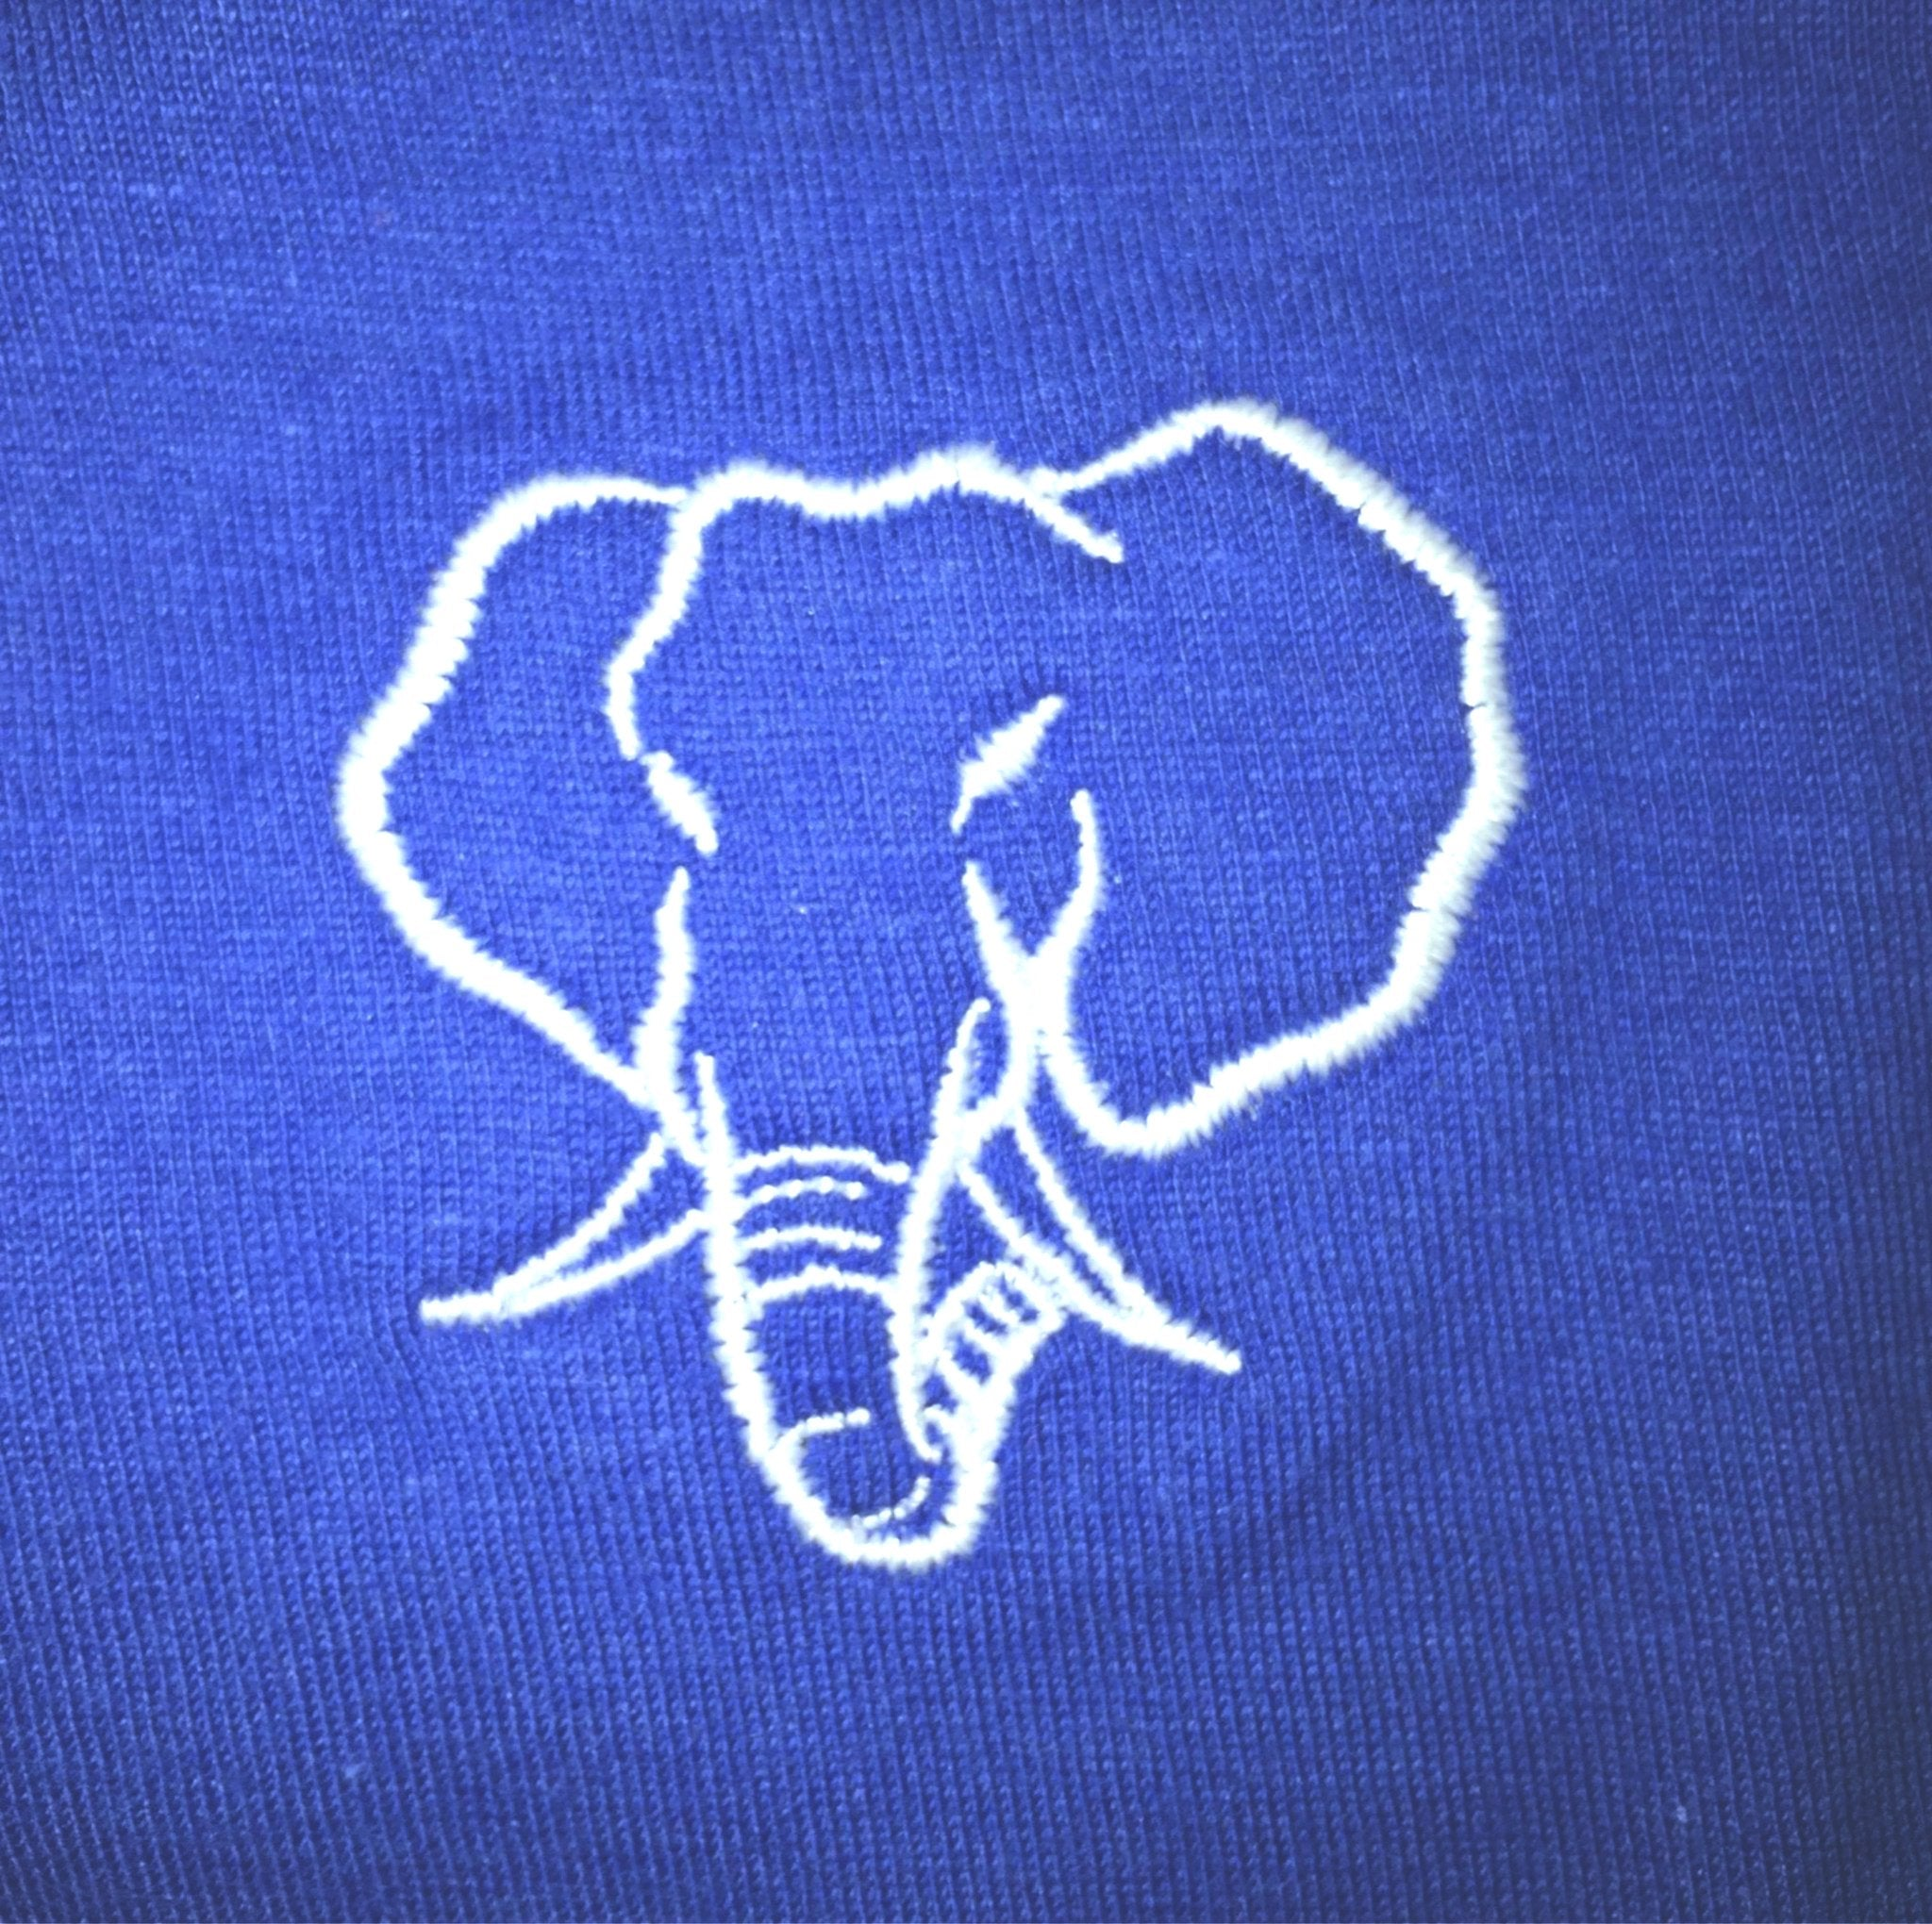 Elephant Head Crewneck Tee in Royal with White Embroidery